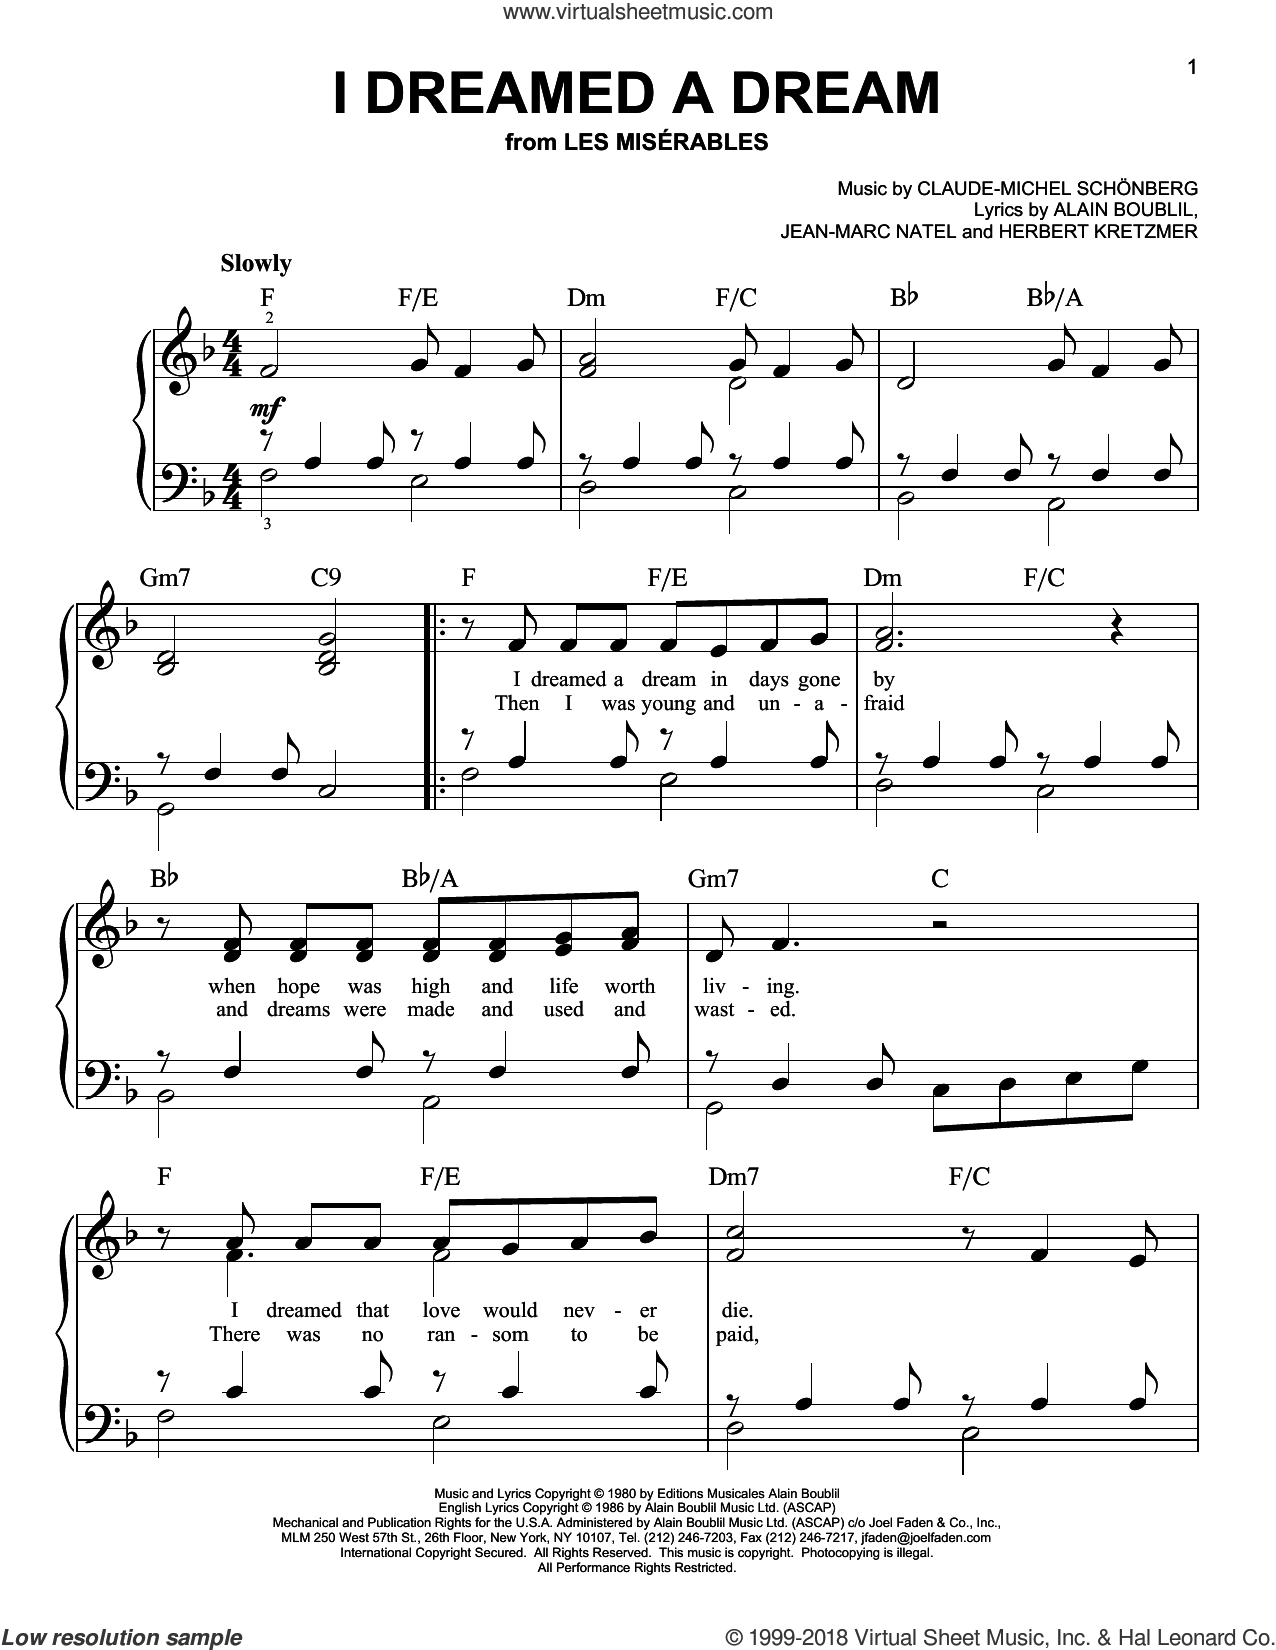 I Dreamed A Dream (from Les Miserables), (beginner) sheet music for piano solo by Claude-Michel Schonberg, Susan Boyle, Alain Boublil, Claude-Michel Schonberg, Herbert Kretzmer and Jean-Marc Natel, beginner skill level